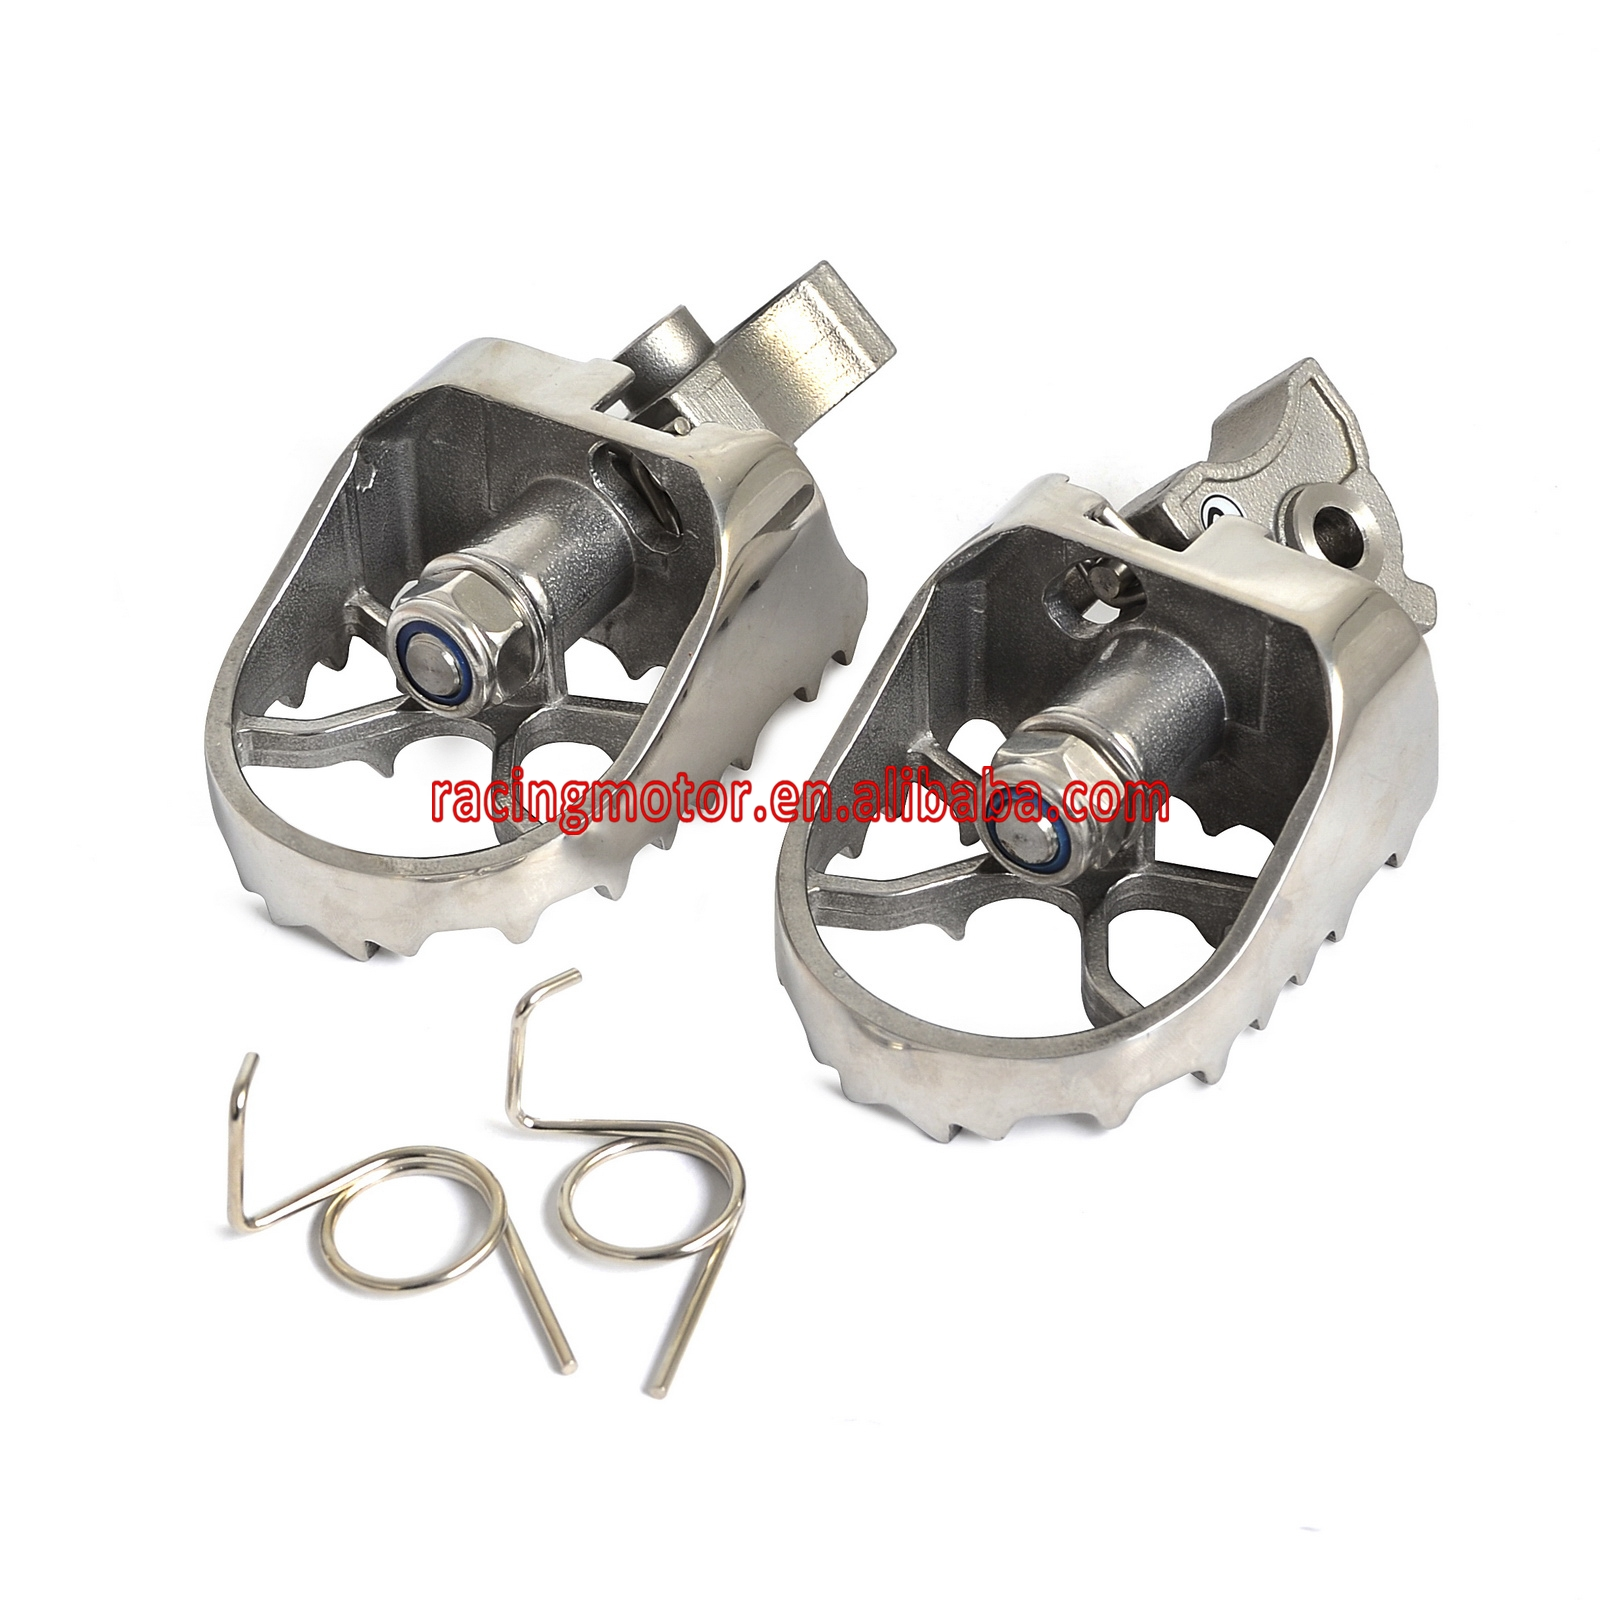 Front Foot pegs Rest Pegs Rests For BMW F650GS G650GS 00-12 F700GS F800GS 08-12 R1150GS ADV 00-05 R1200GS ADV 13-14 раскладушка therm a rest therm a rest luxurylite mesh xl